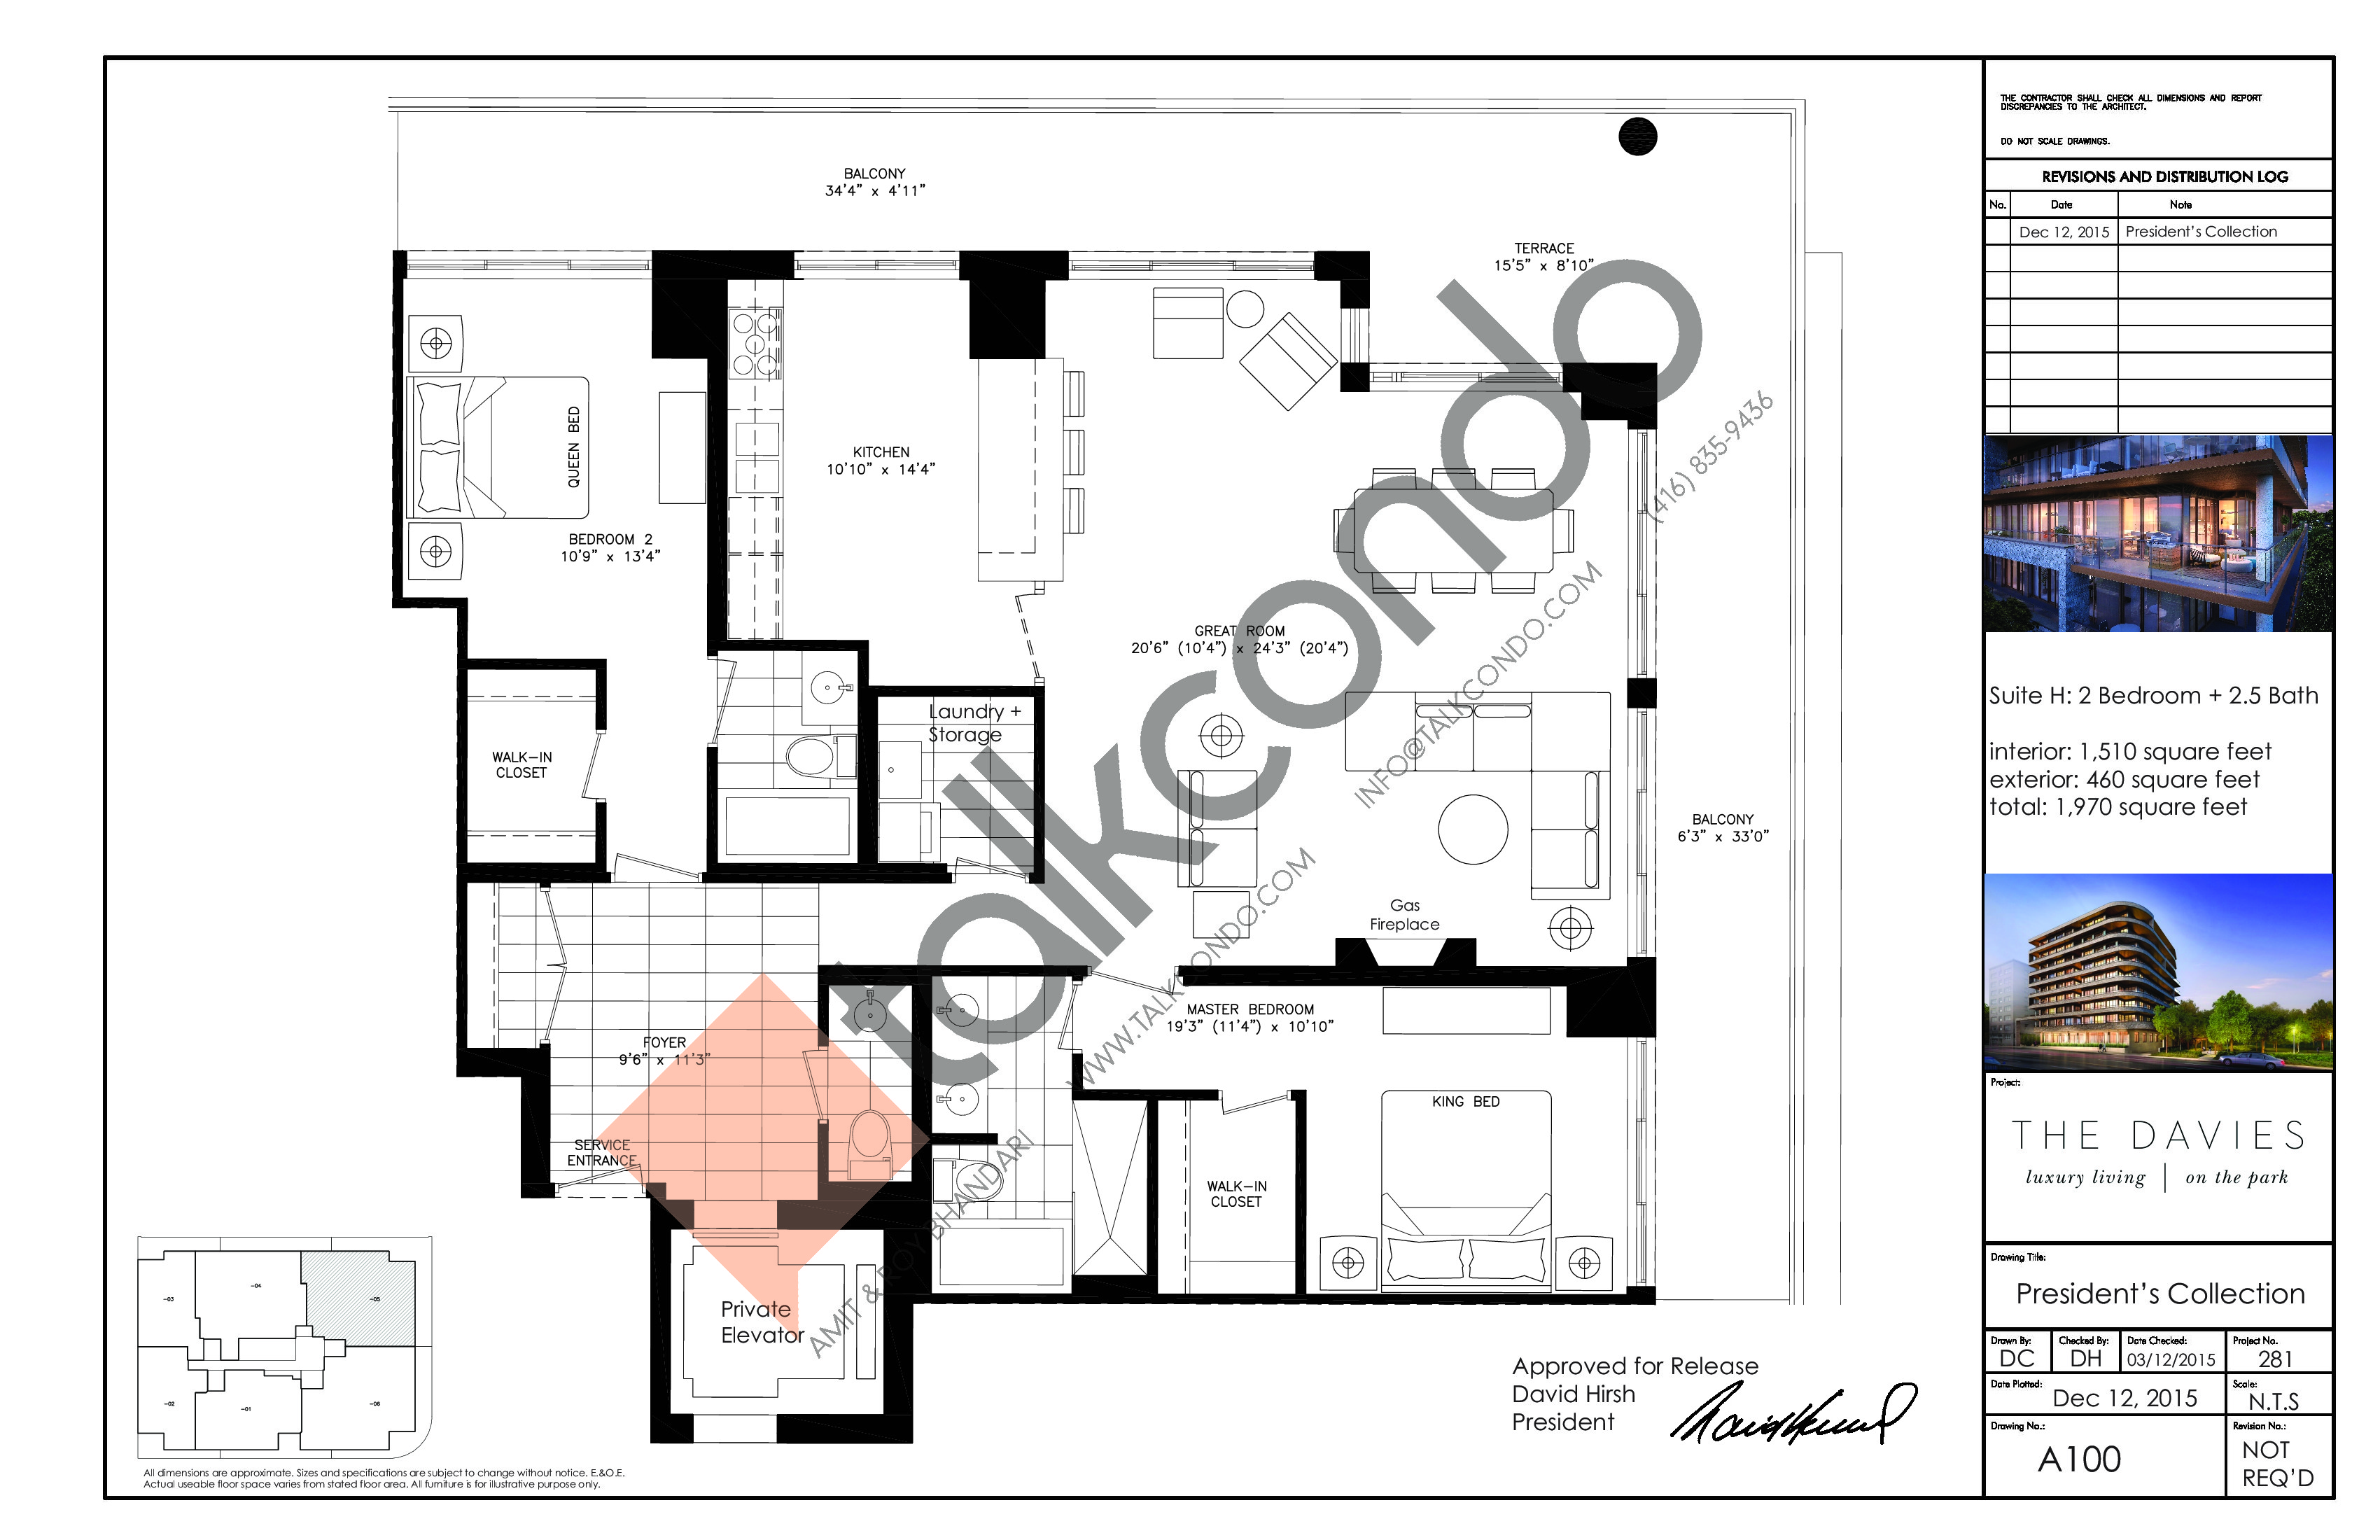 Suite H Floor Plan at The Davies - 1510 sq.ft